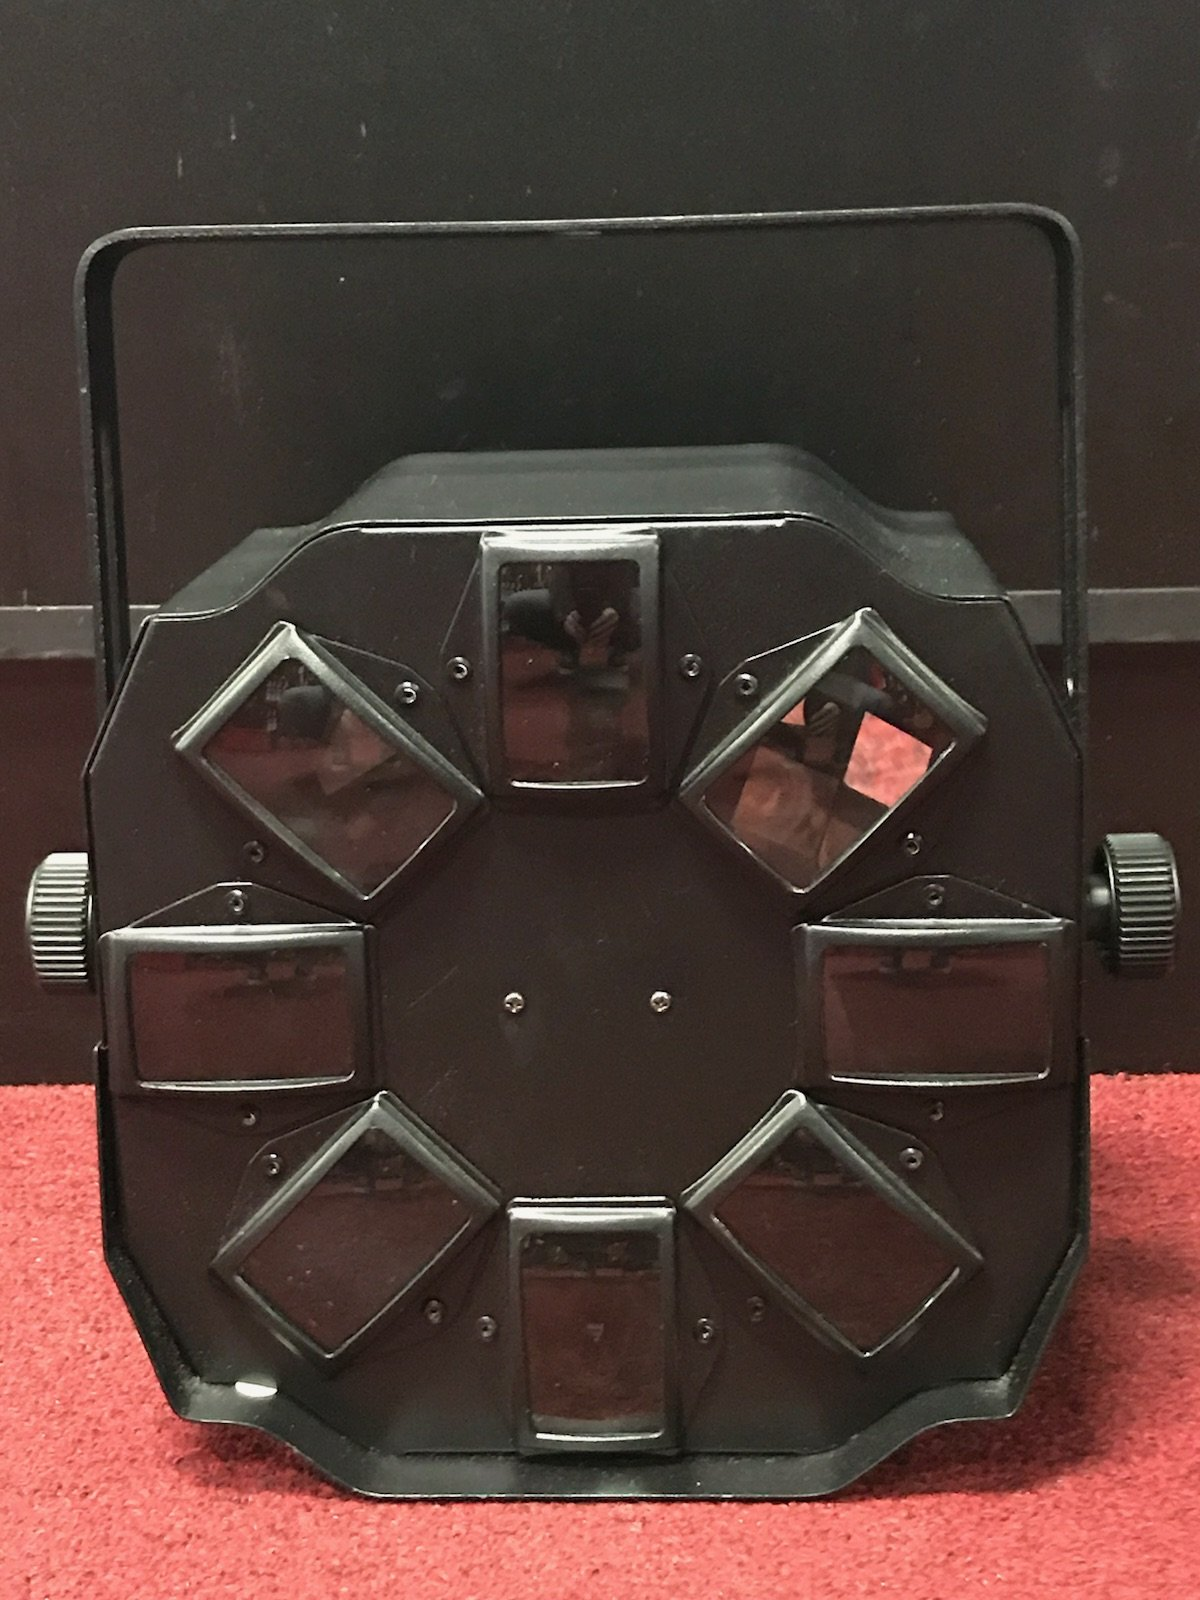 Used Chauvet Swarm 4 Light